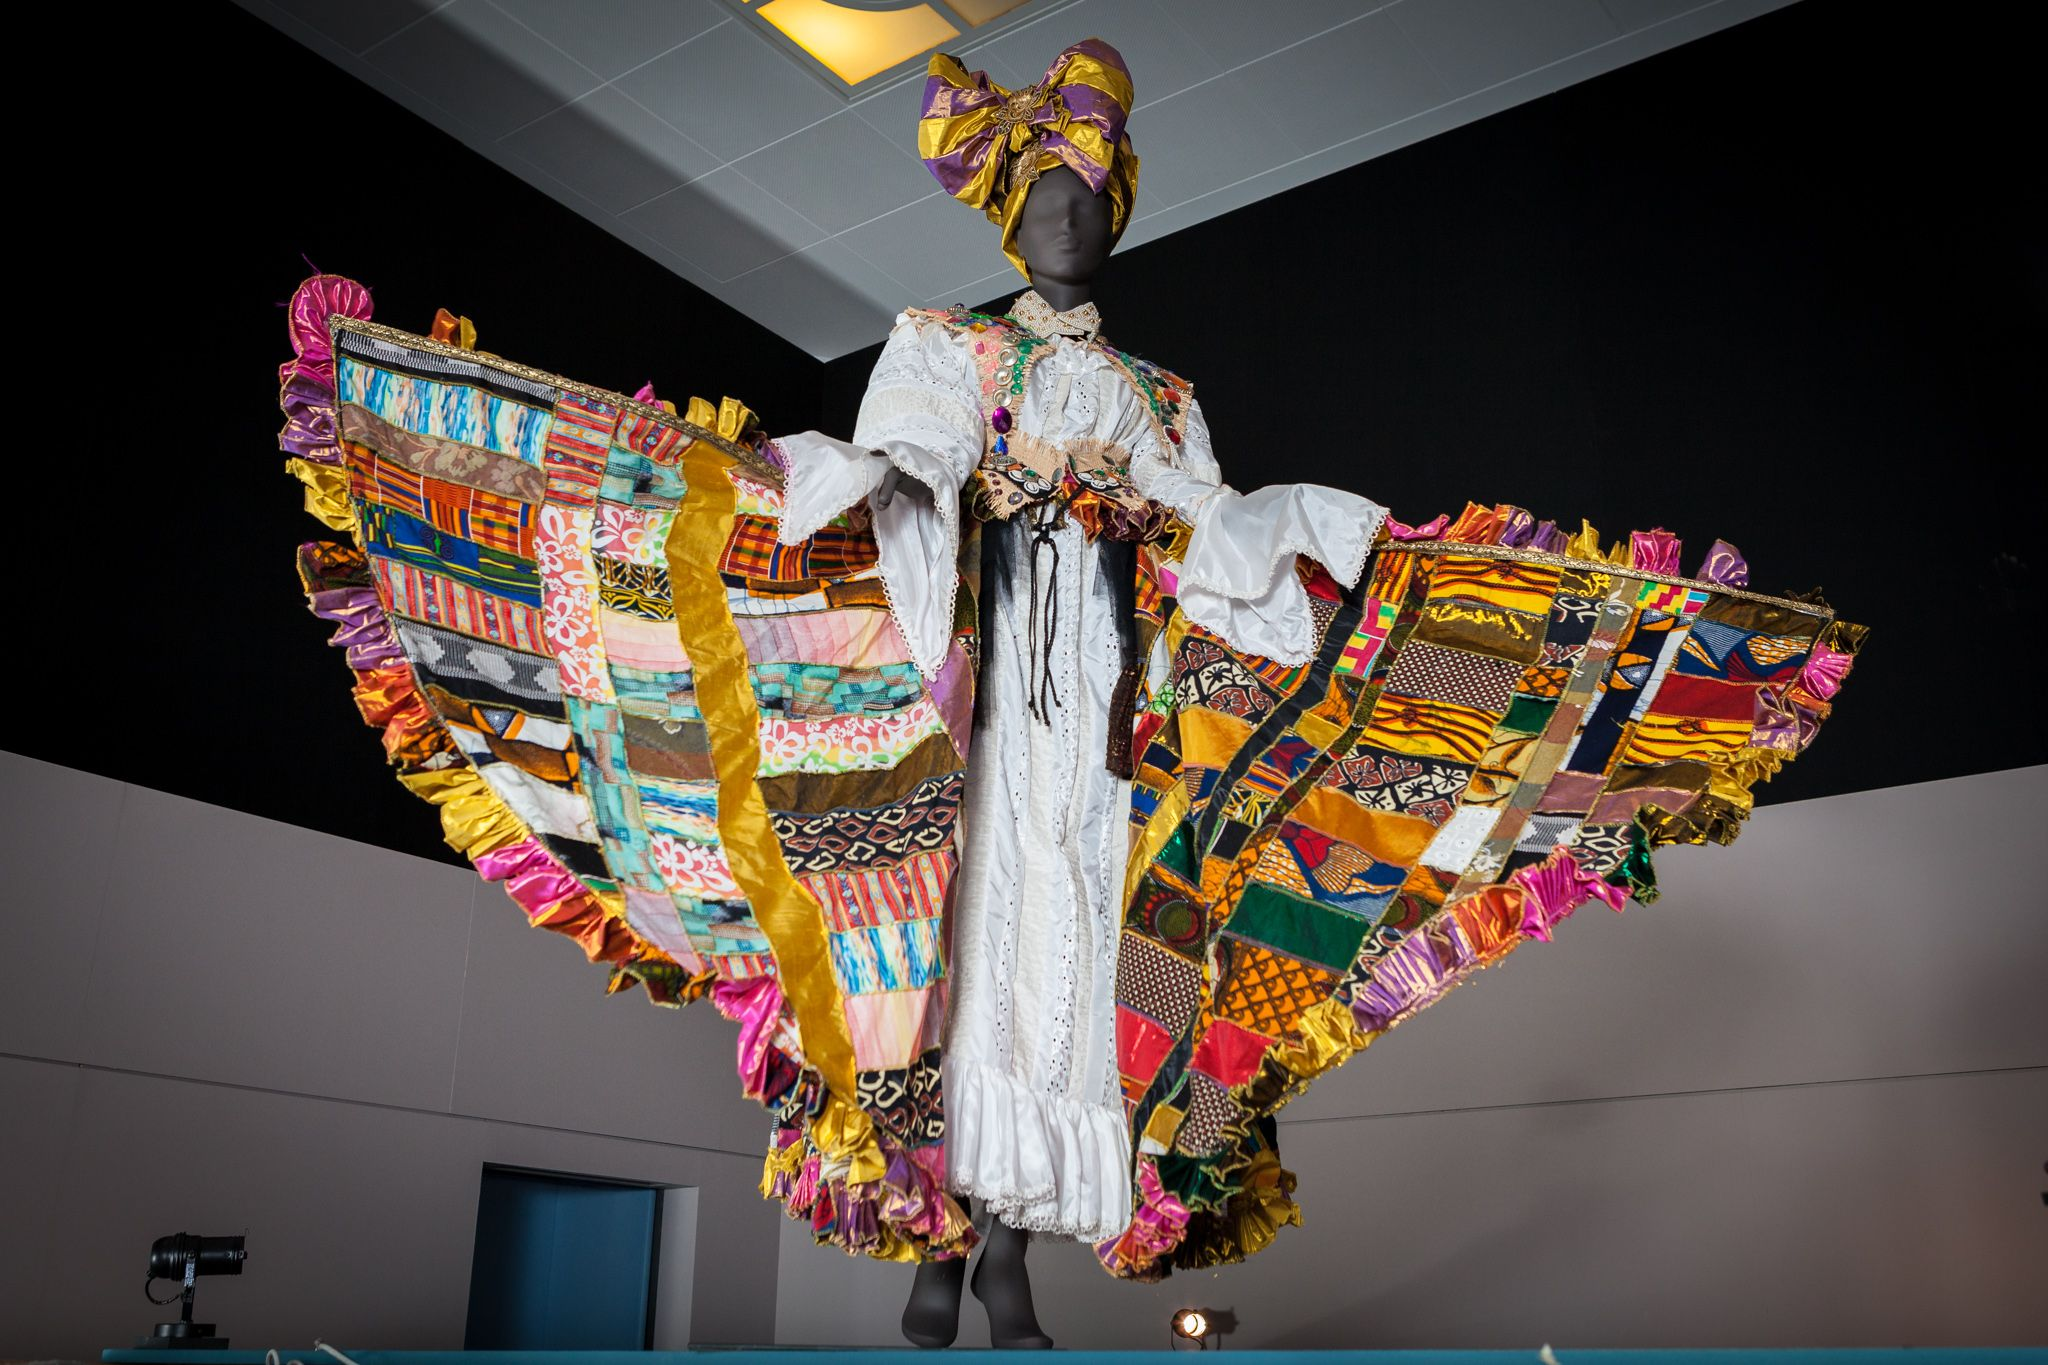 Bele carnival costume. Designed by Ray Mahabir of Sunshine International Arts. Photo: Toby Keane. This item was on display in the British Library's 'West Africa: Word, Symbol, Song' exhibition 2015-2016